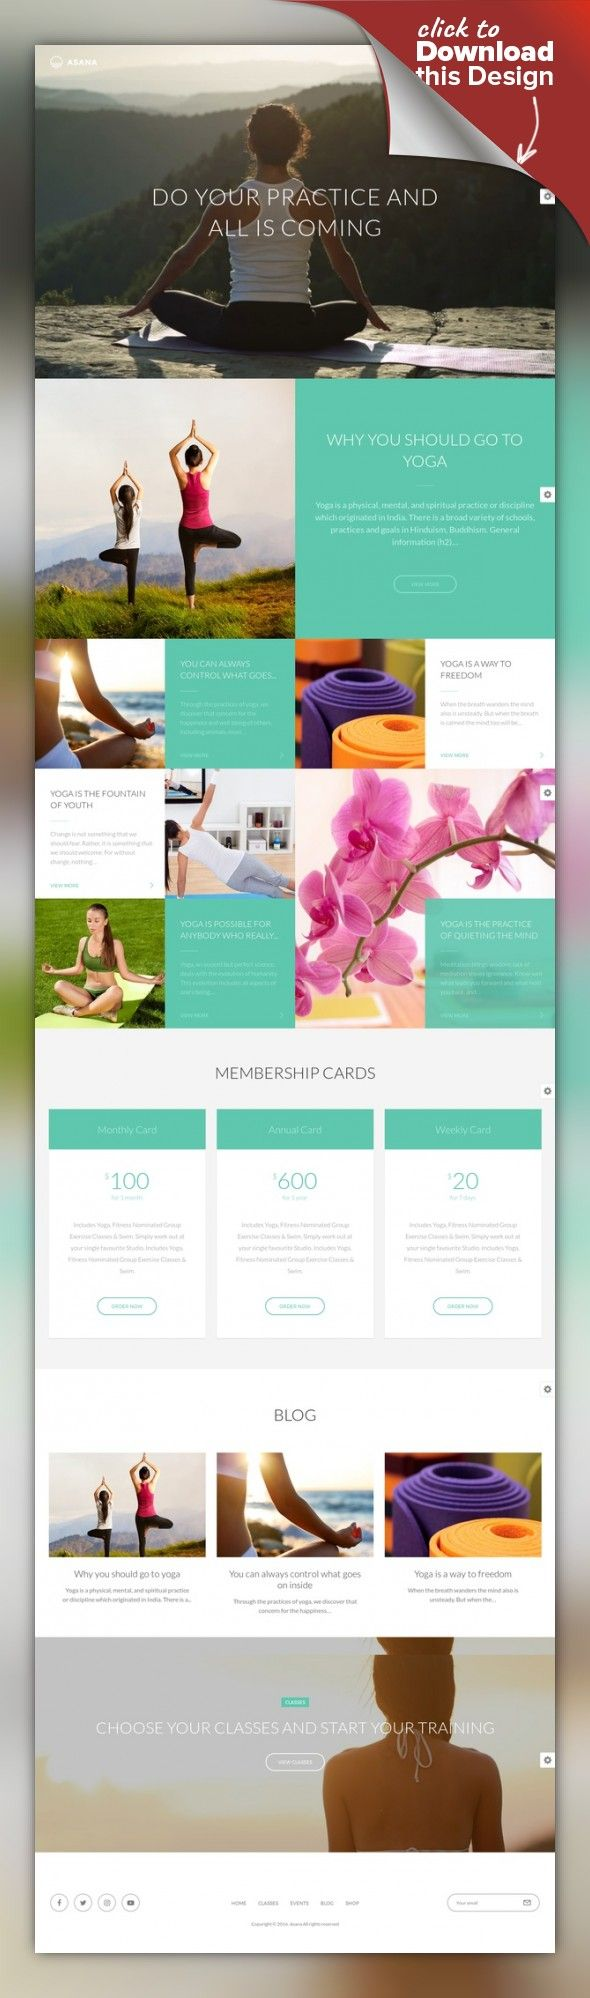 Asana - Sport and Yoga WordPress Theme classes, dance, events, fitness, gym, meditation, pilates, schedule, shop, spa, sport, studio, timetable, trainer, yoga Asana is a clean, flat and modern WordPress theme suitable for any type of sport and dance studios, gyms, health clubs, event agencies and a lot more. Asana is designed according to the latest trends, fresh colors are used. The theme is designed for full size screen. ...